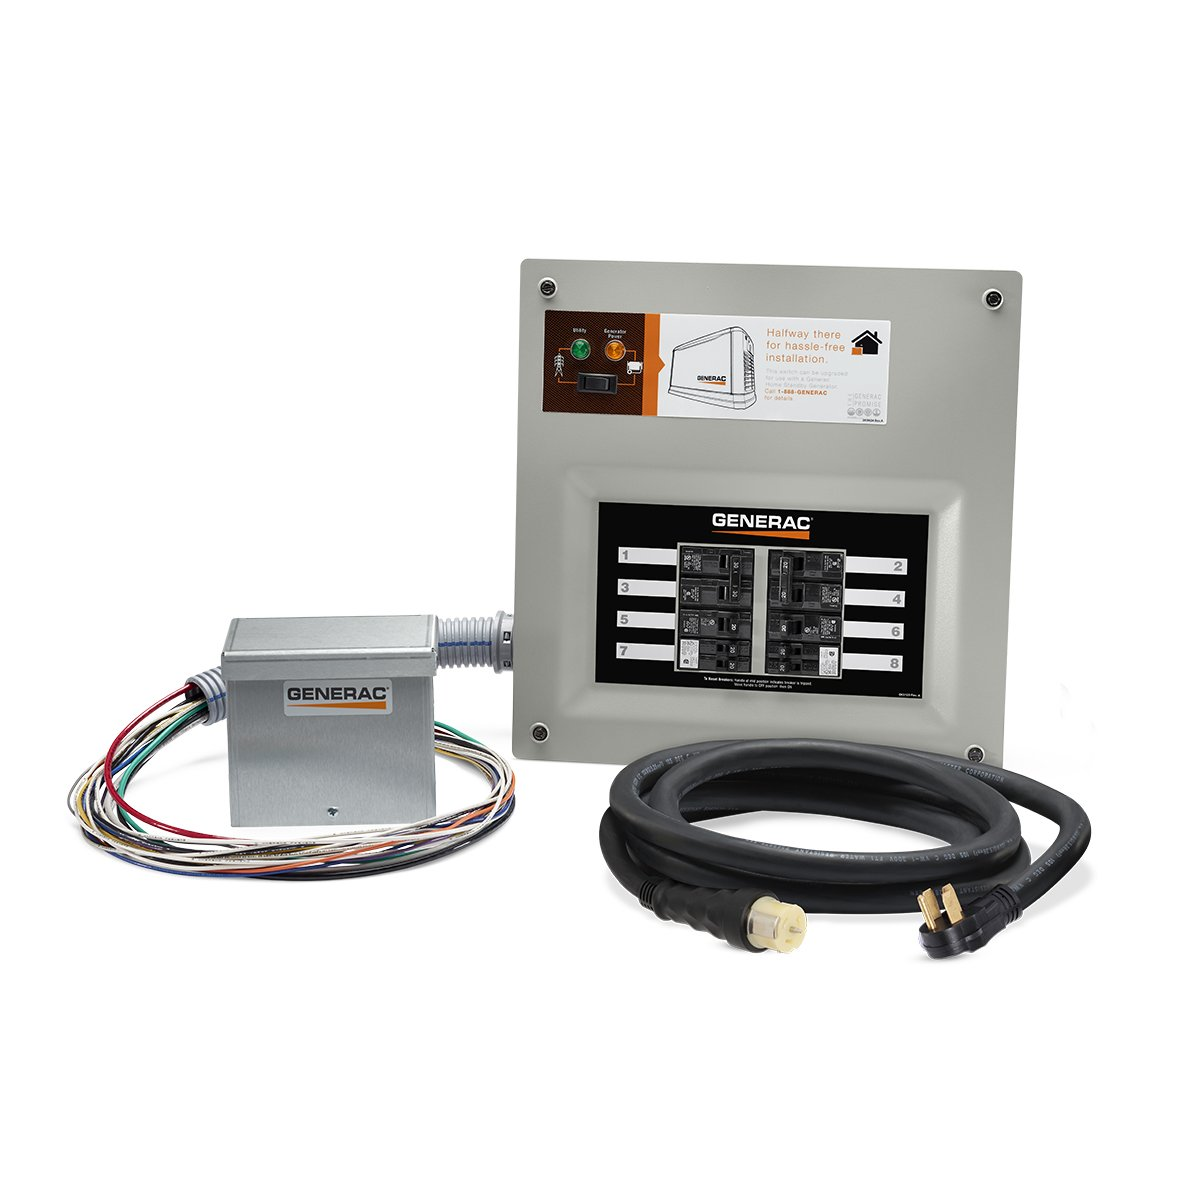 Generac 9855 HomeLink 50-Amp Indoor Pre-wired Upgradeable Manual Transfer Switch Kit for 10-16 circuits - Includes Power Inlet Box and 10-ft Cord by Generac